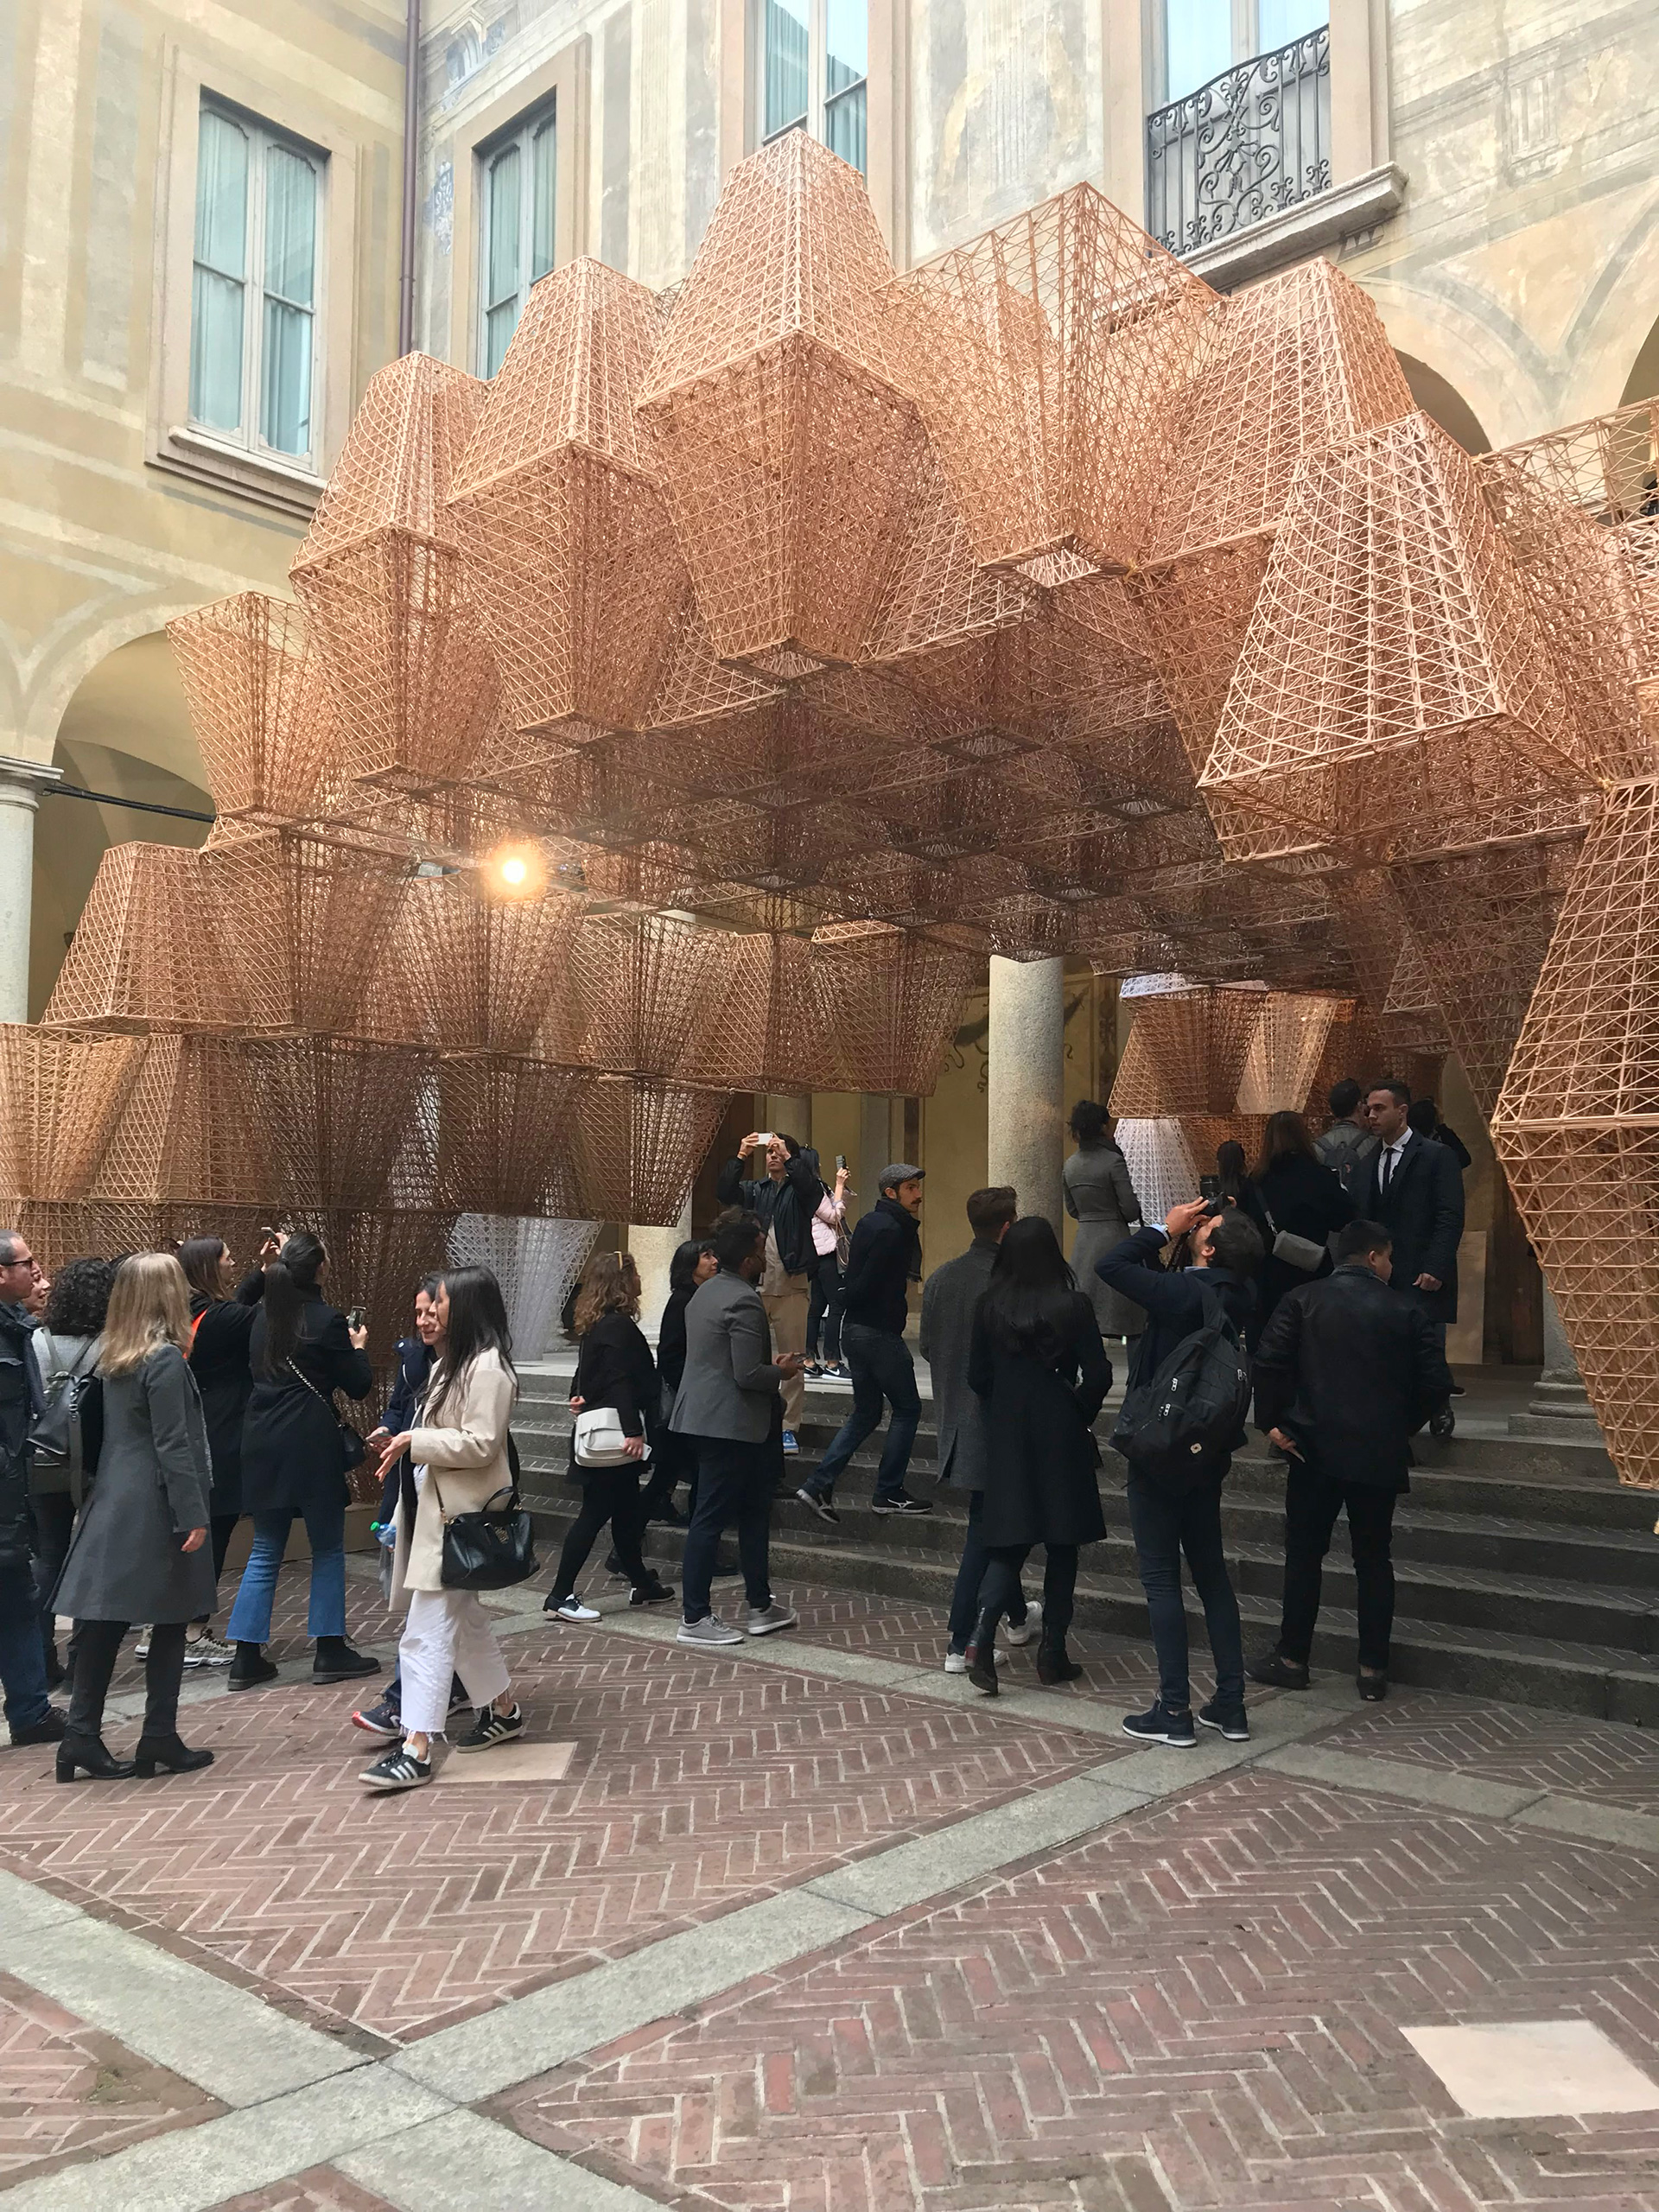 The structure was assembled using 700 bioplastic bricks| COS| Mamou Mani| Conifera| Salone del Mobile| STIR